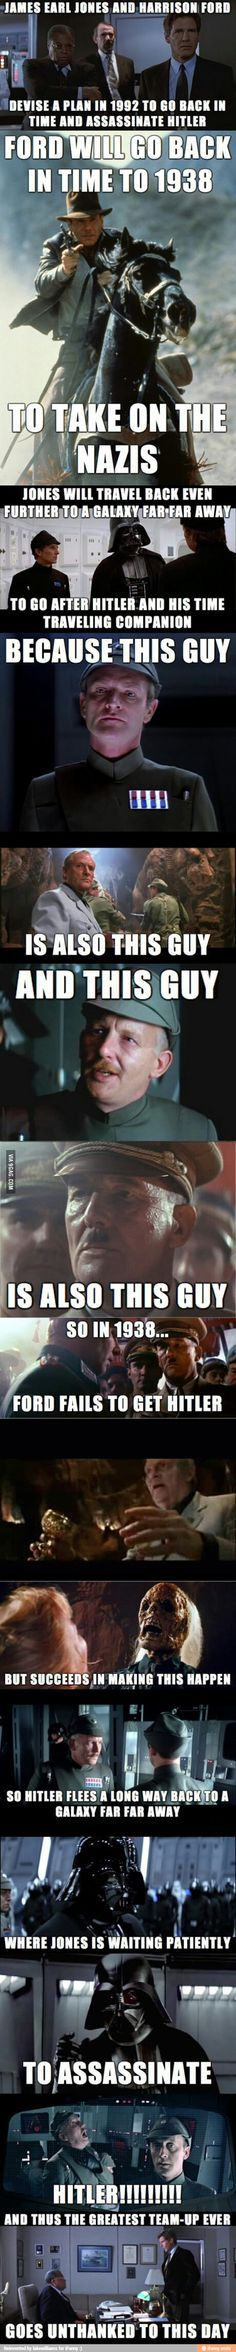 James Earl Jones and Harrison Ford devised a plan to assinante Hitler.